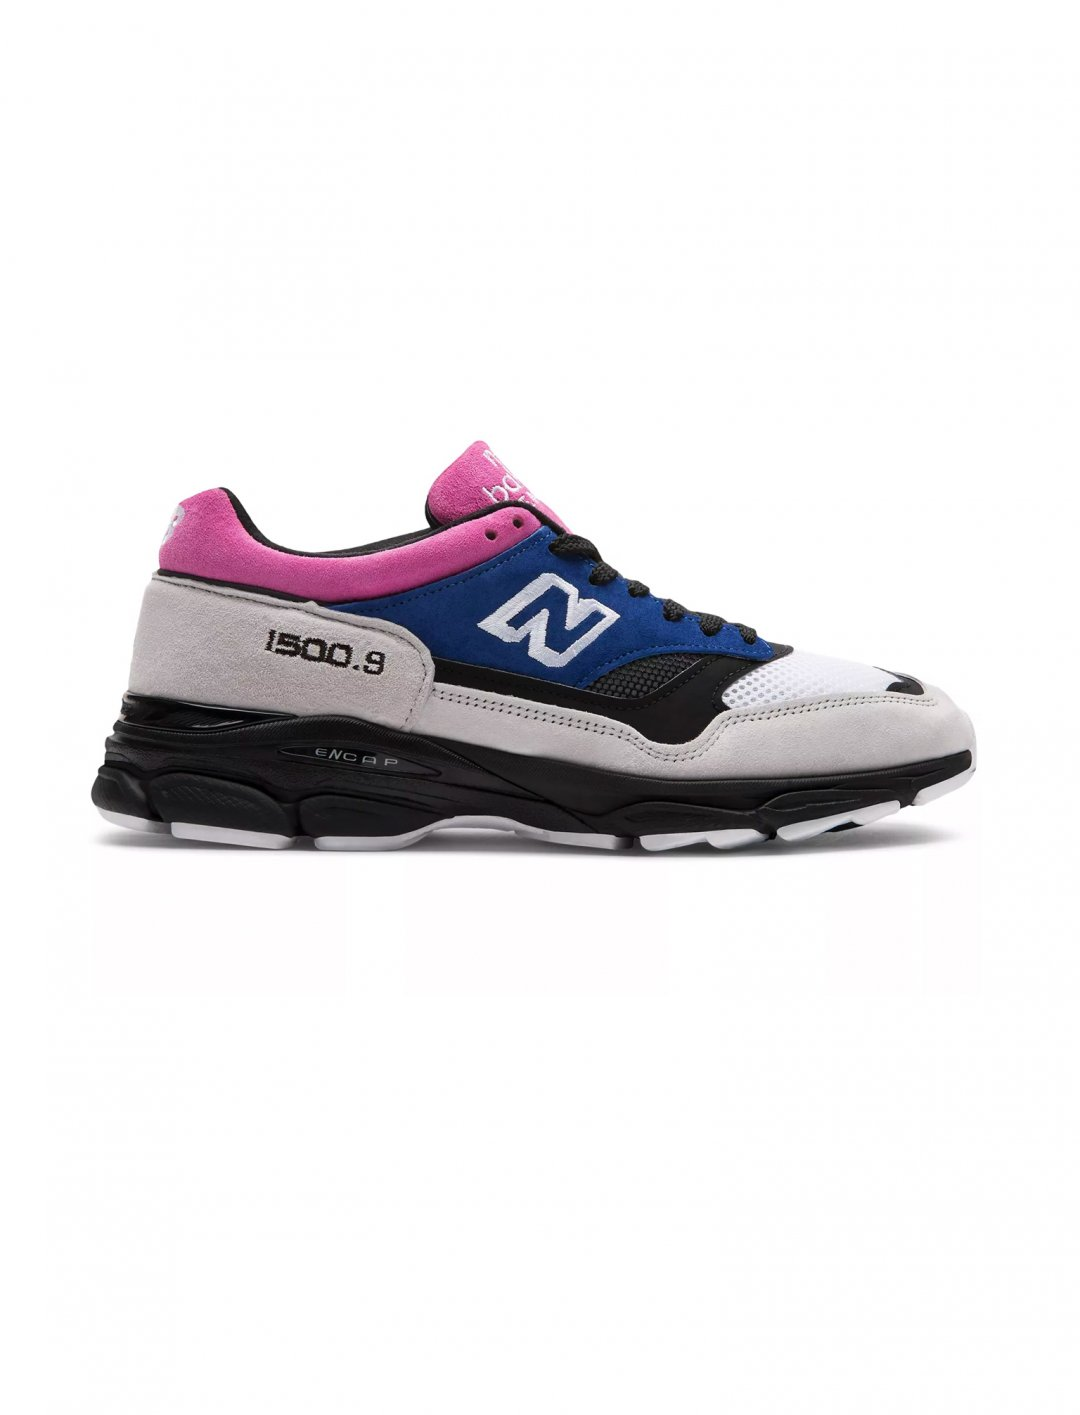 "1500.9 Made in UK Shoes {""id"":12,""product_section_id"":1,""name"":""Shoes"",""order"":12} New Balance"